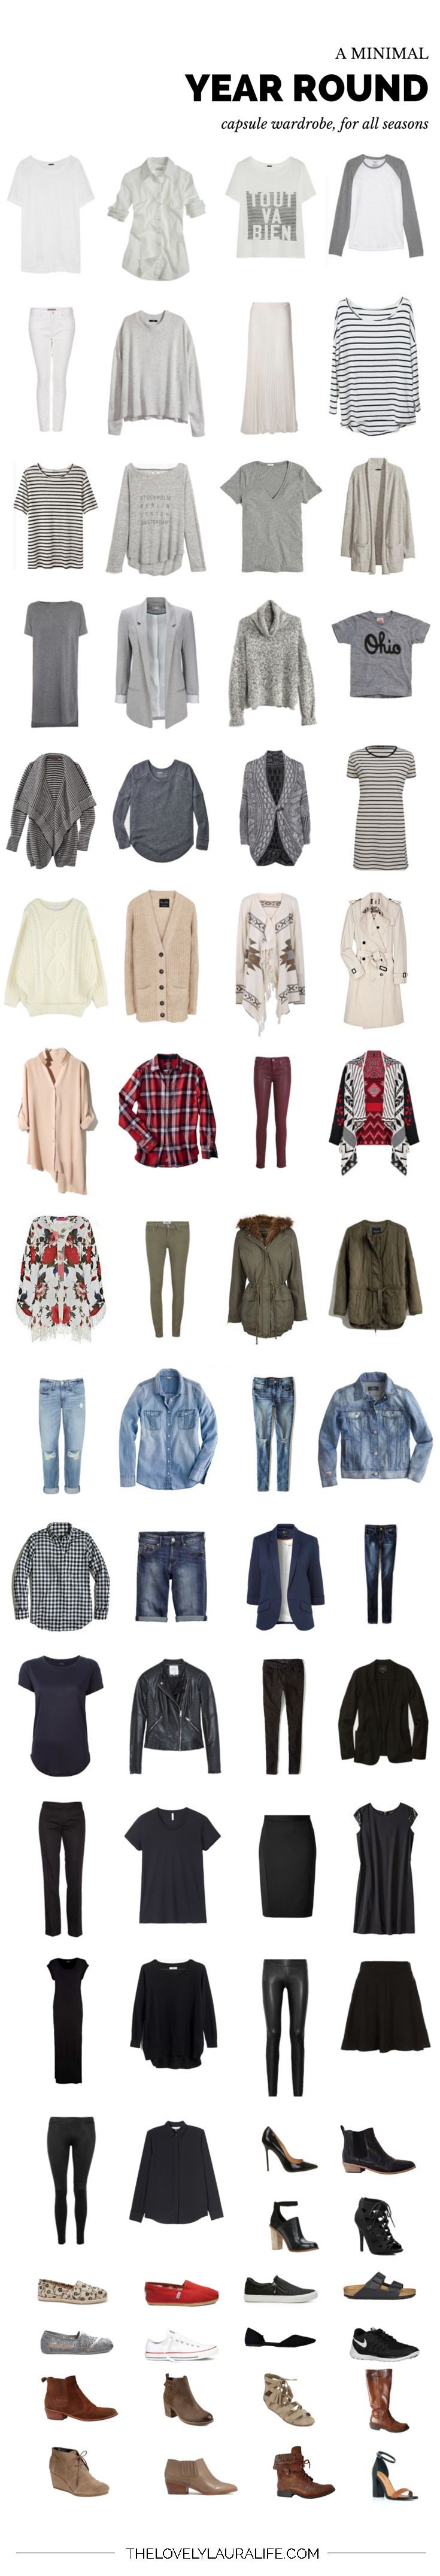 """A Minimal Year Round Capsule Wardrobe, For All Seasons"""